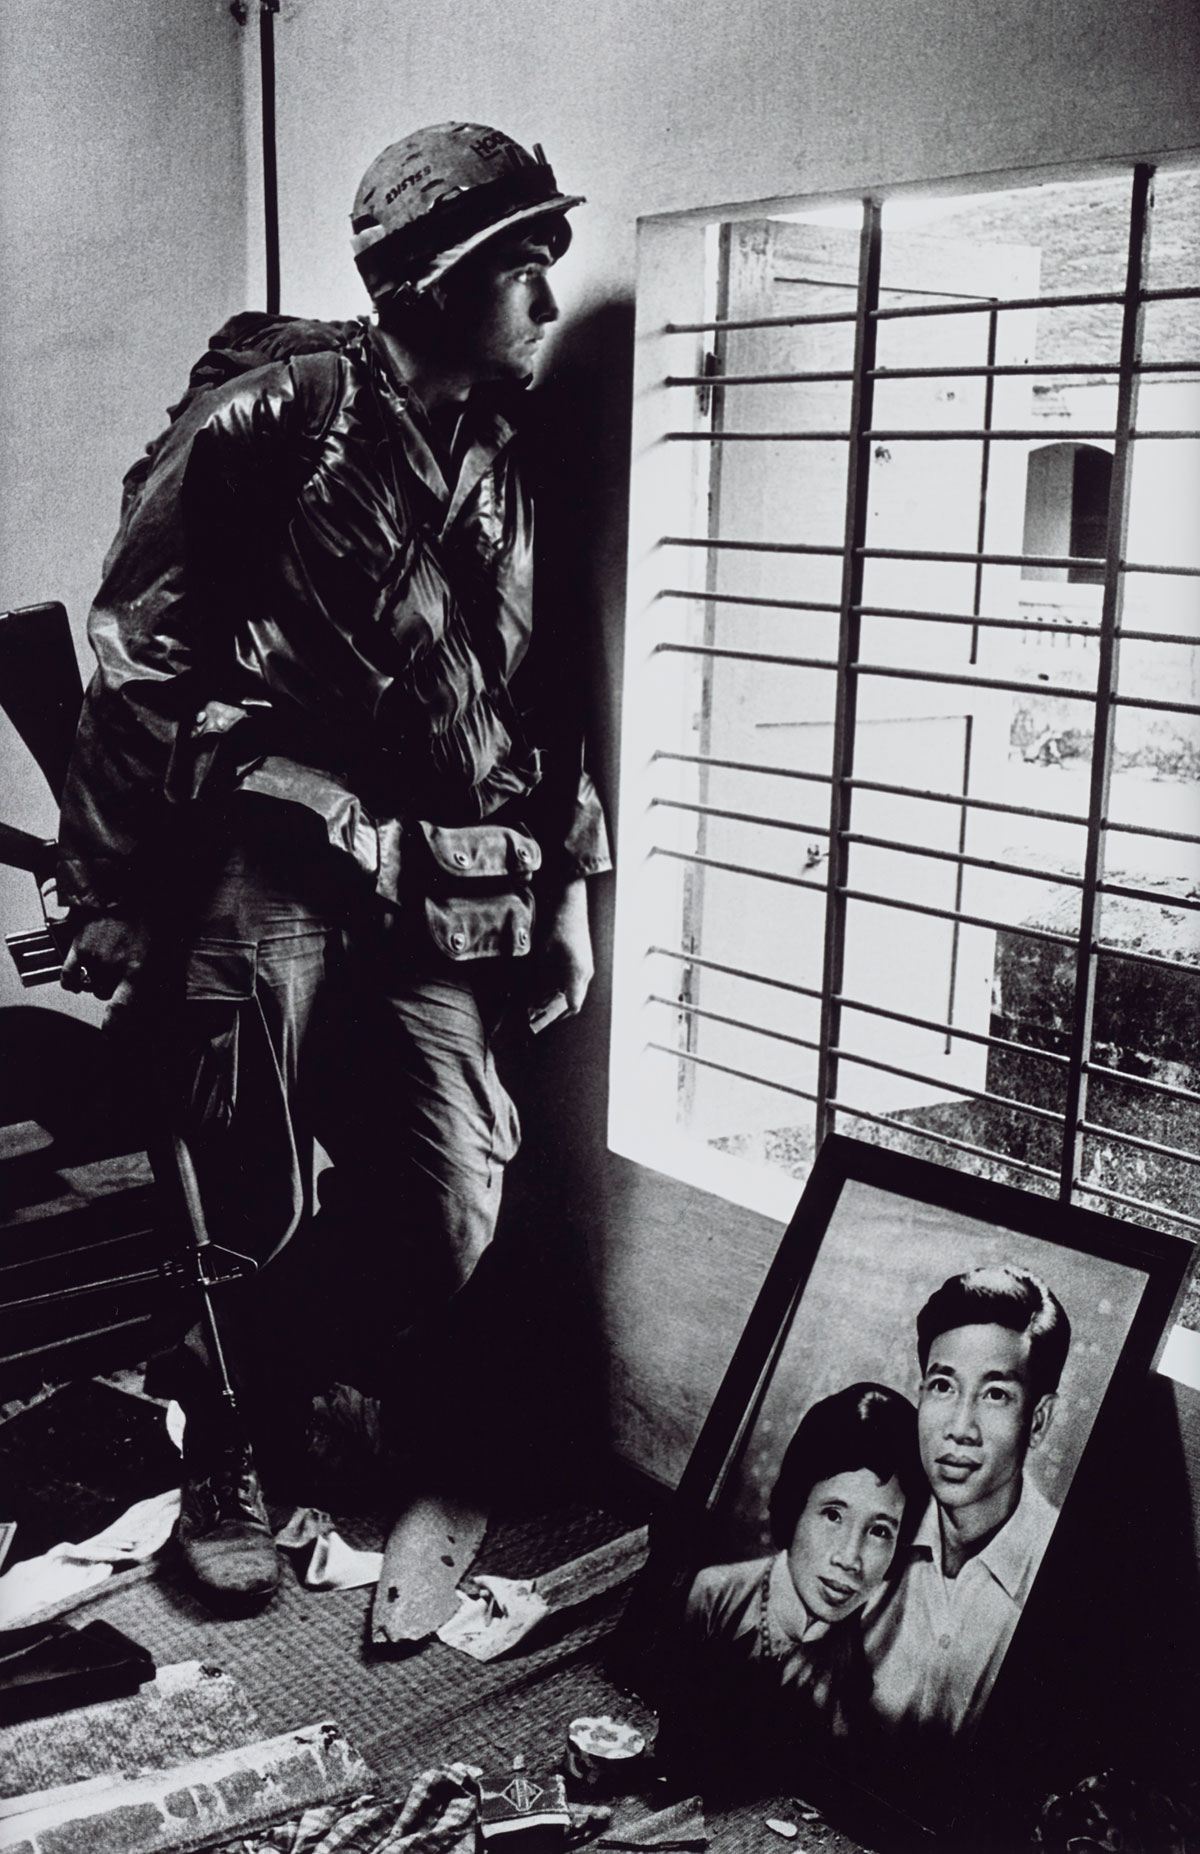 https://www.artsandcollections.com/wp-content/uploads/2019/02/Don-McCullin-Major-Retrospective-Opens-at-Tate-Britain.jpg